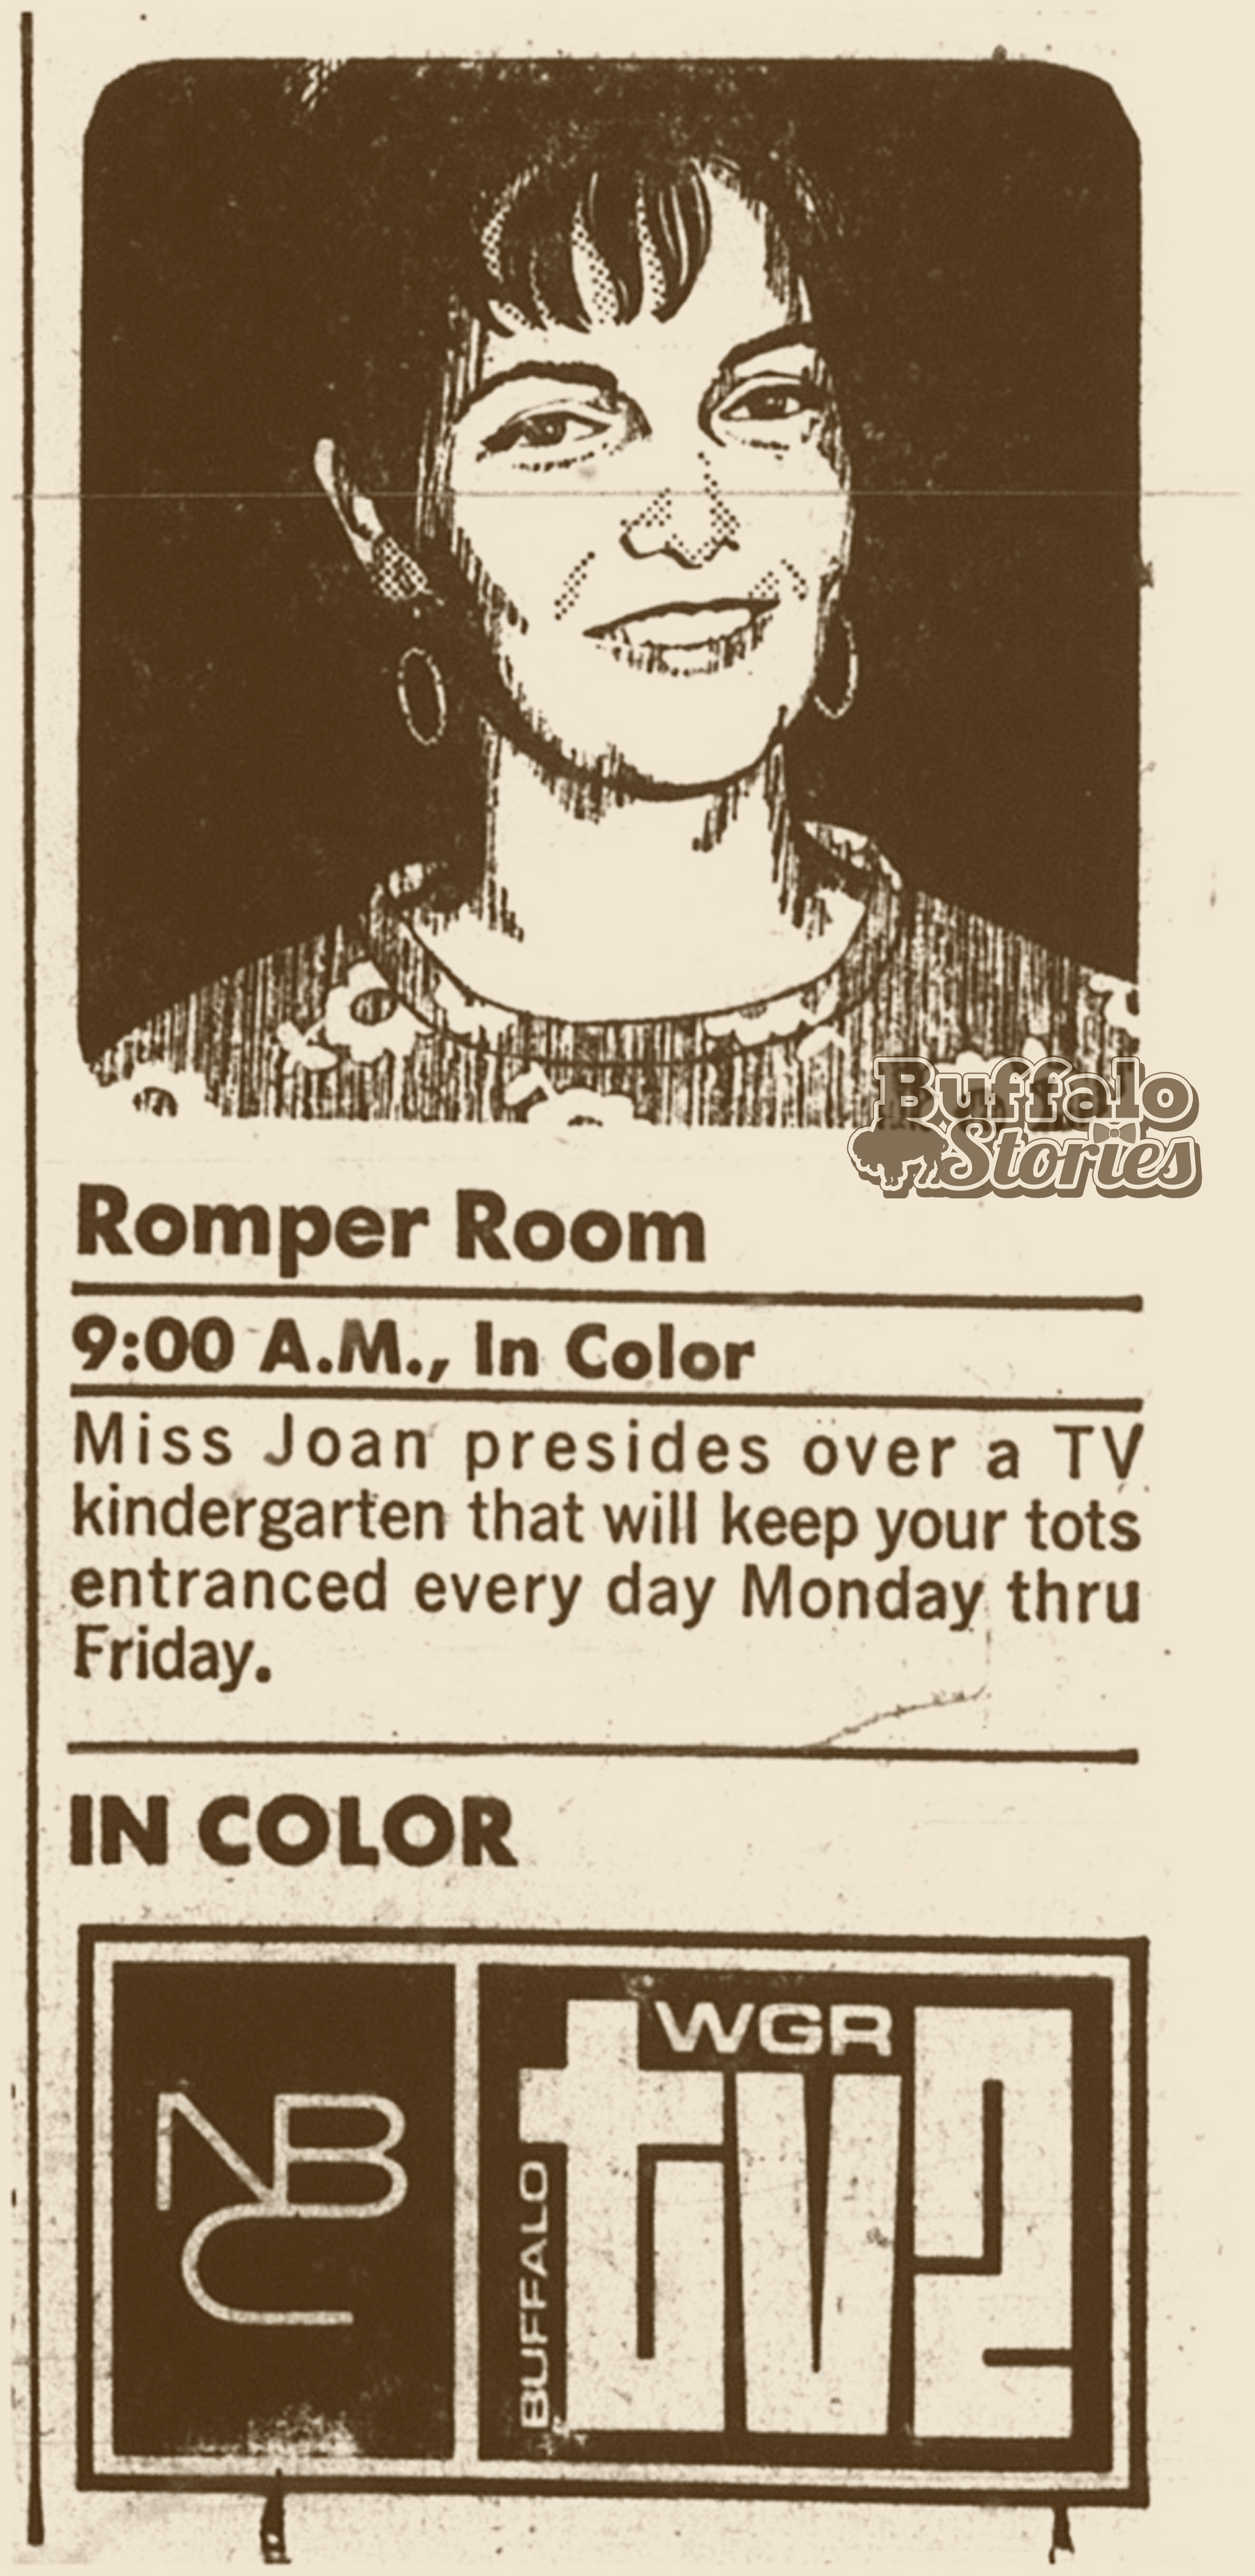 Buffalos pop culture heritage buffalo stories archives blog a 1969 ad for romper room on ch2 this show was produced in new york city spiritdancerdesigns Image collections